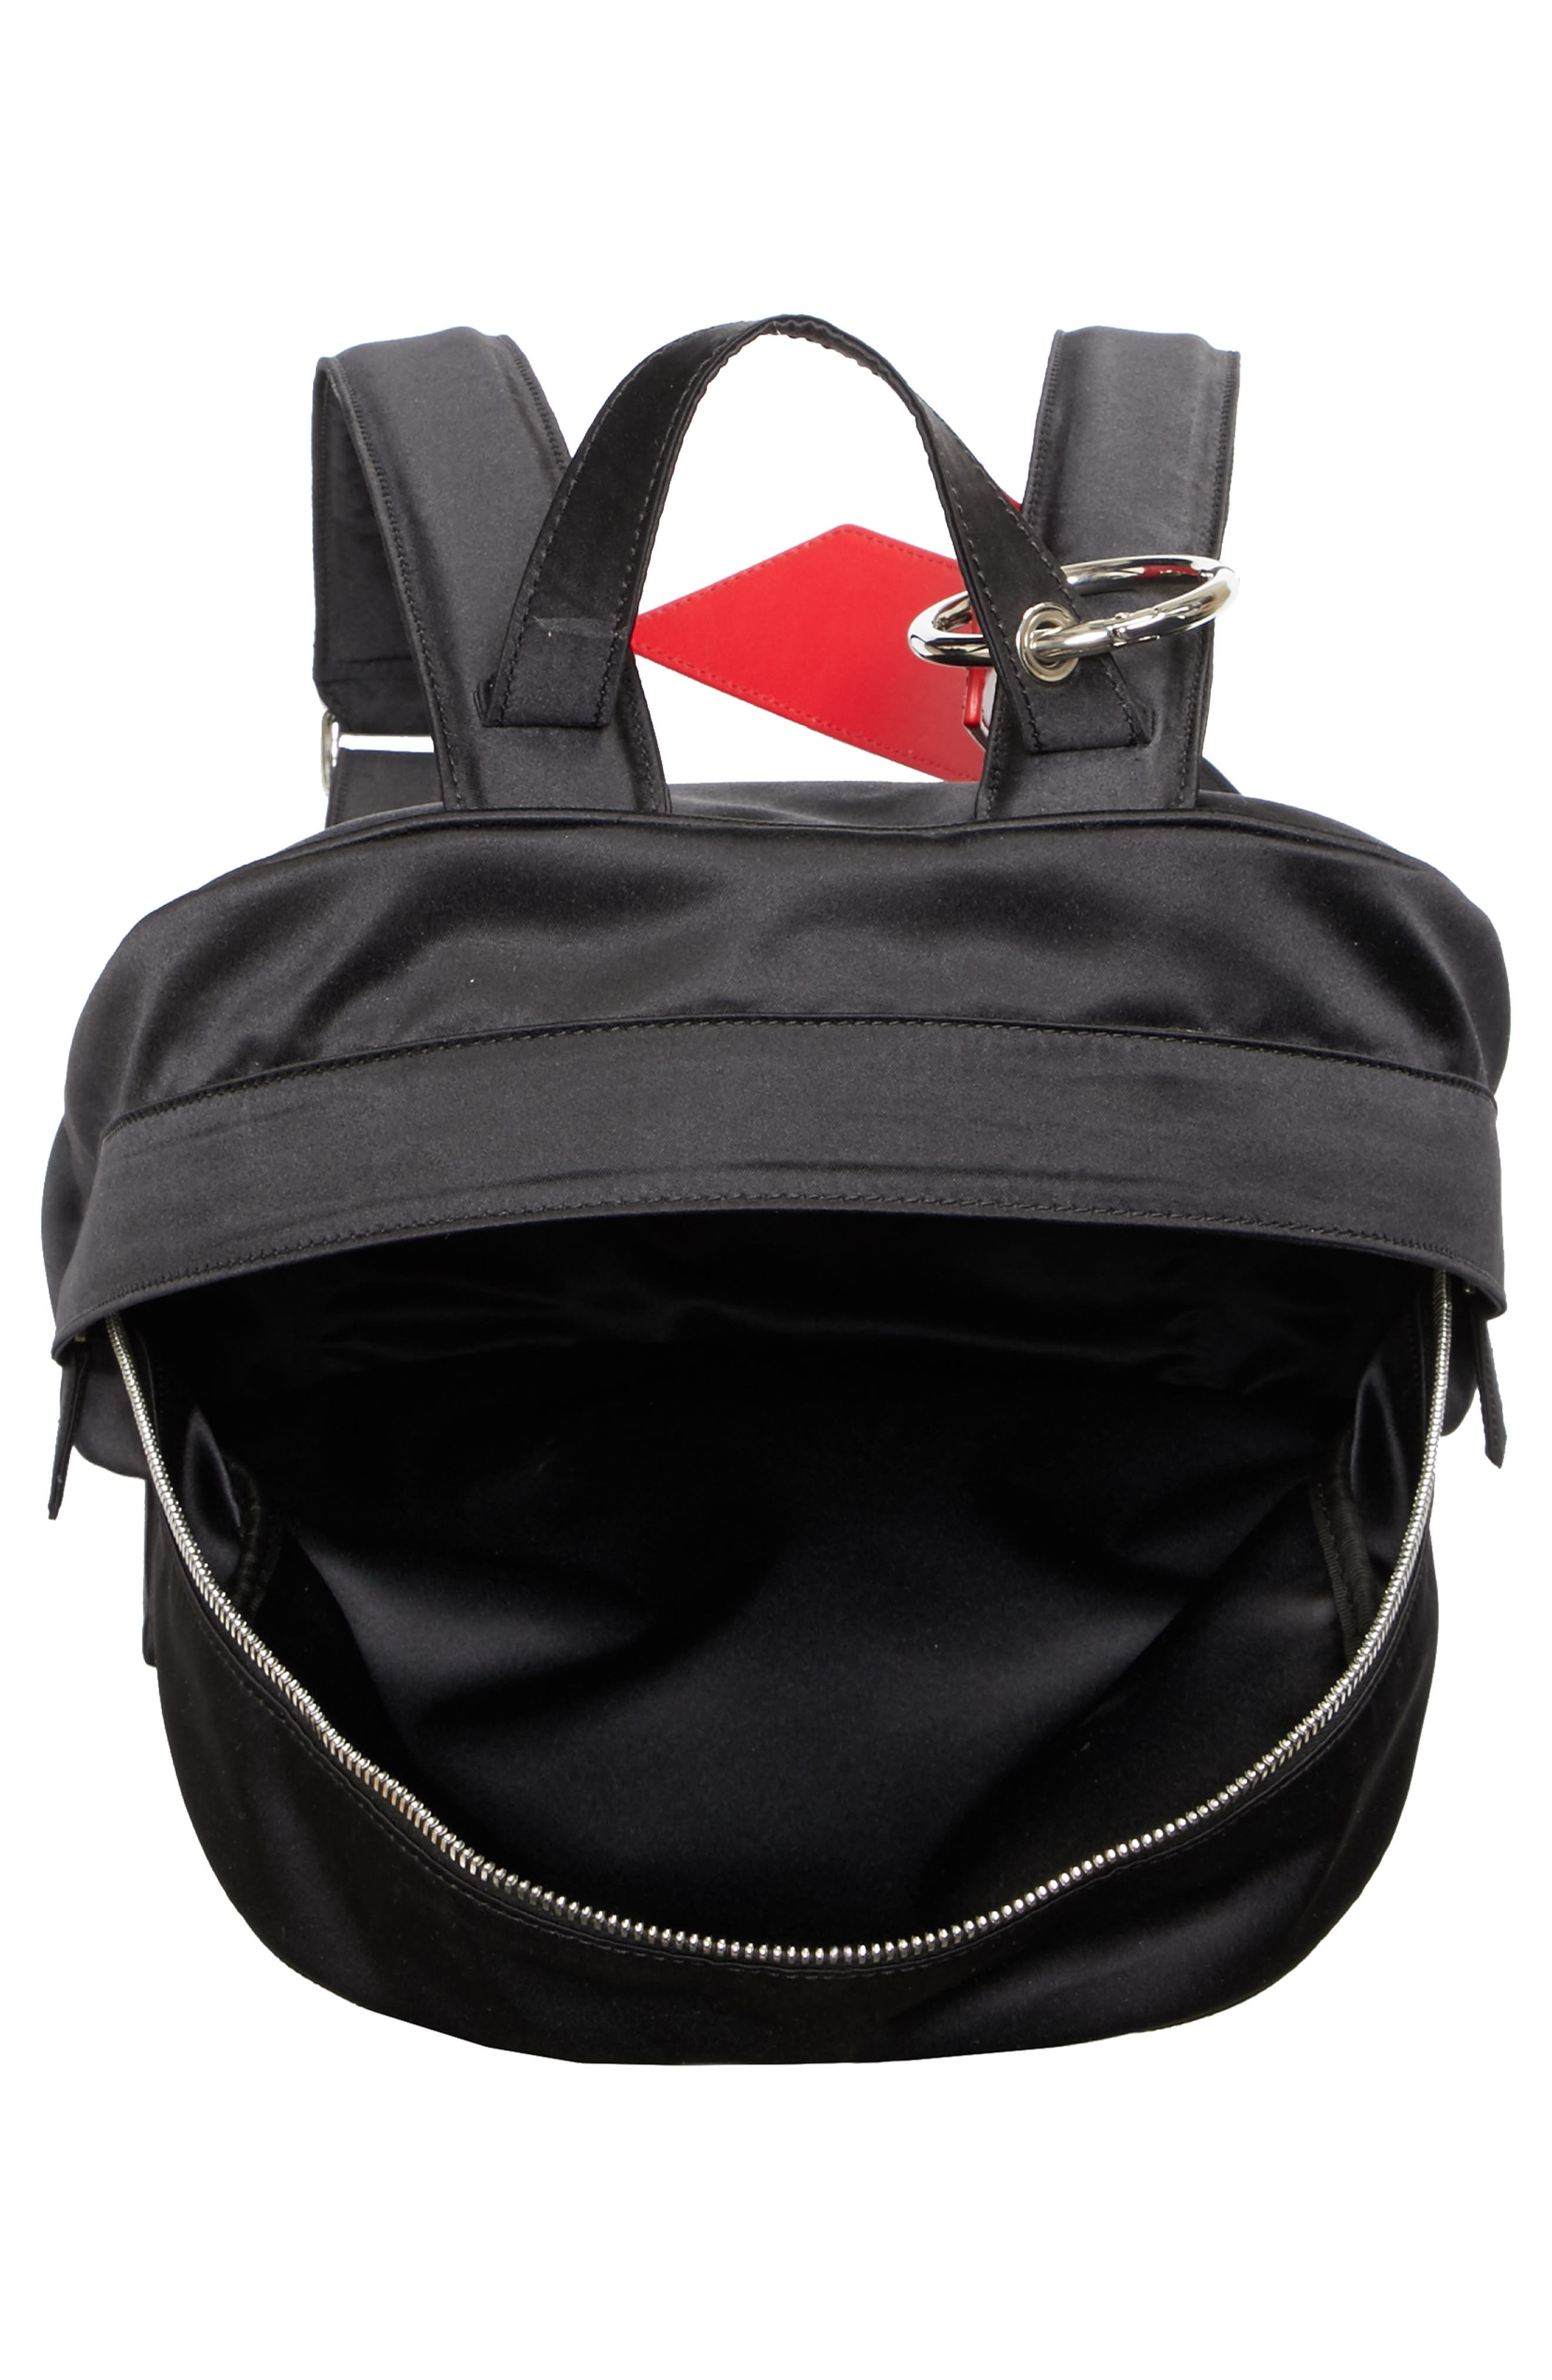 x Andy Warhol Foundation Nylon Backpack,                             Alternate thumbnail 4, color,                             Black/ Red/ Black